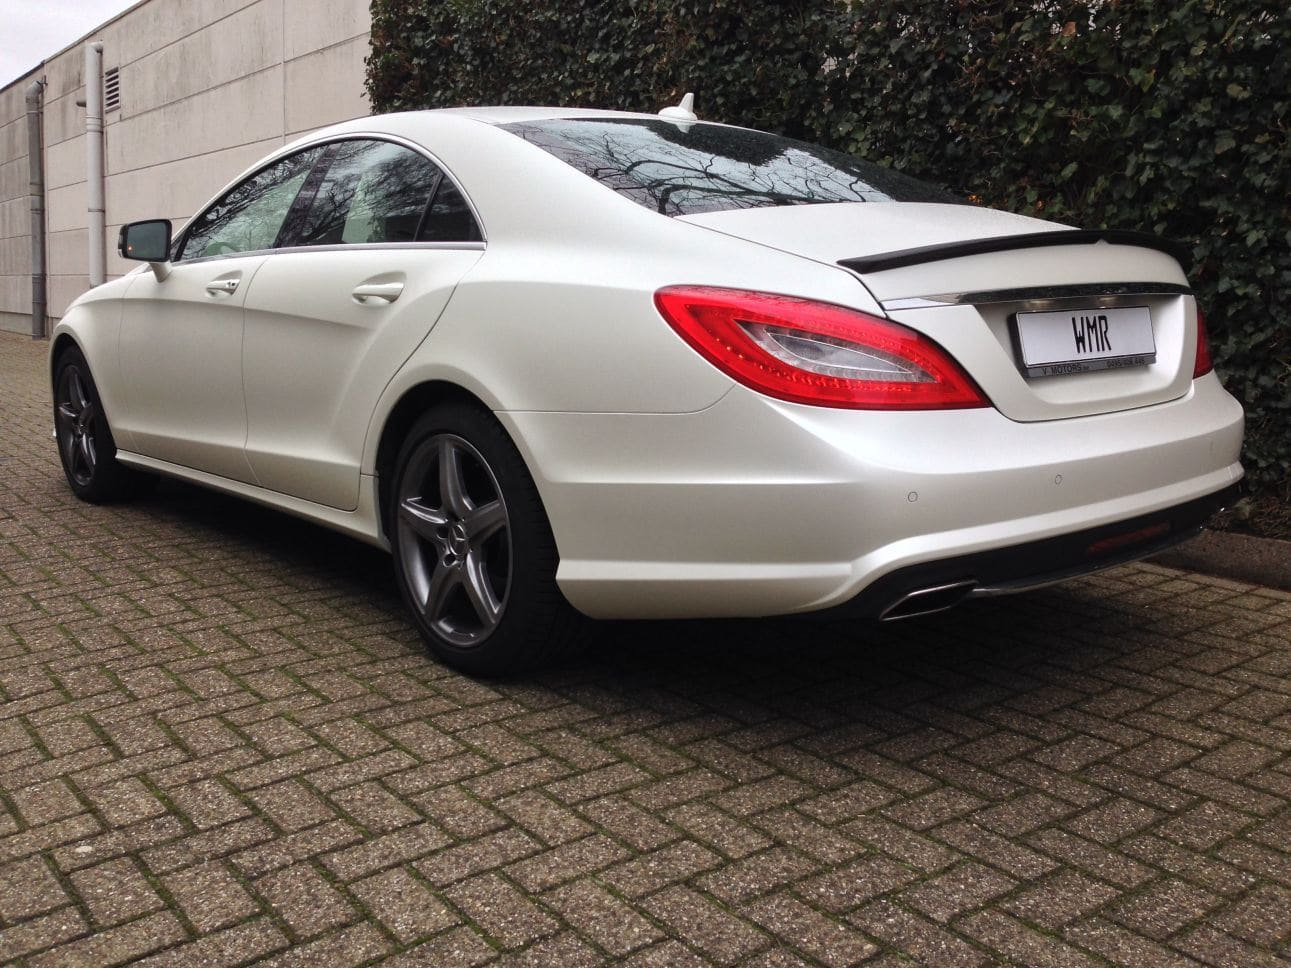 Mercedes CLS met White Satin Pearl Wrap, Carwrapping door Wrapmyride.nu Foto-nr:6216, ©2021